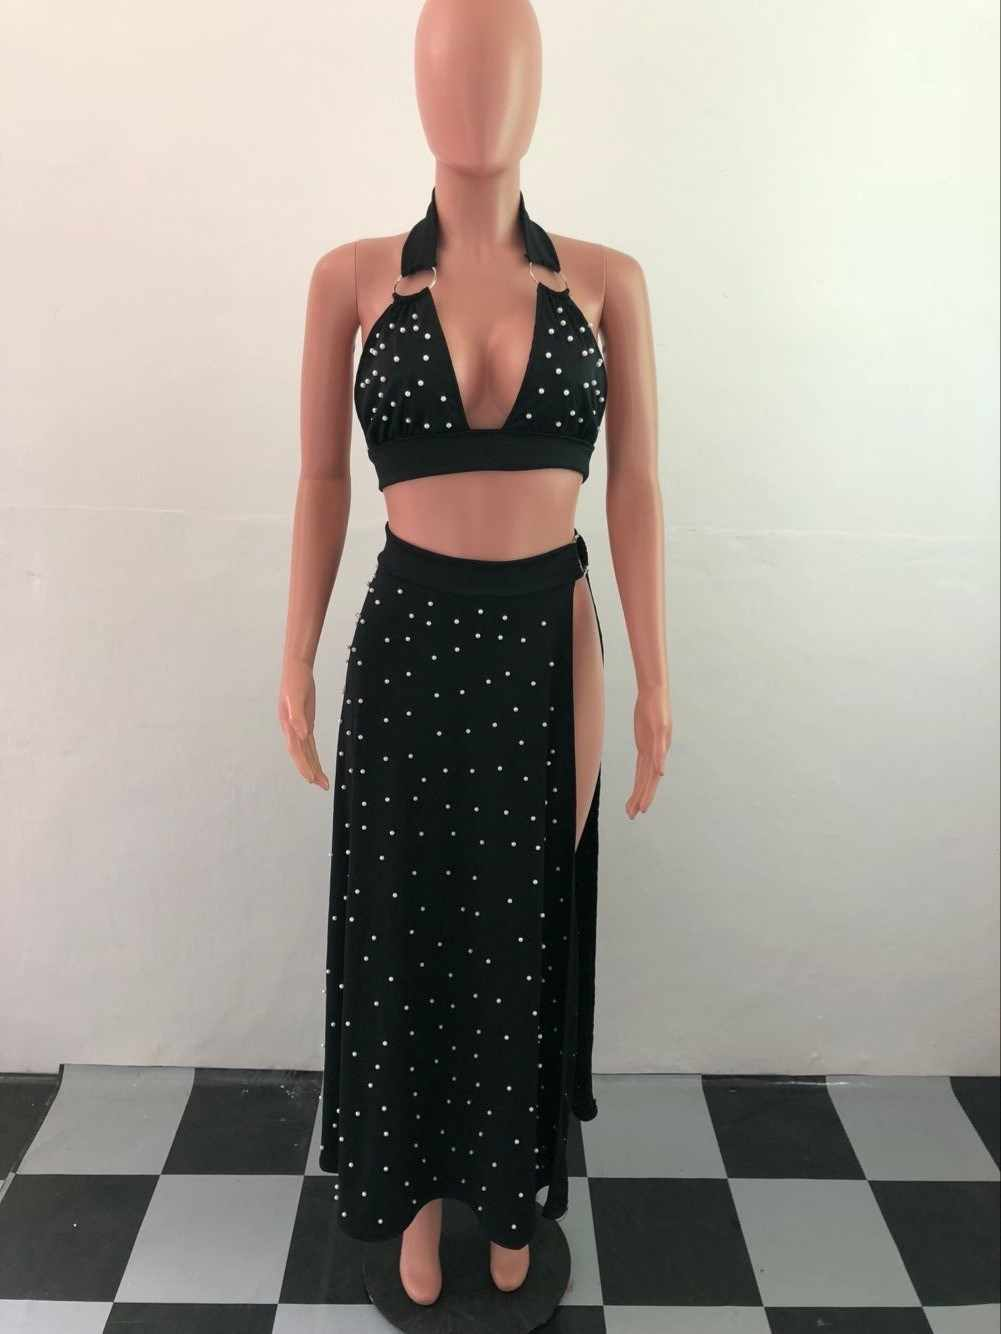 d7efd7e49ef ... 2019 Women Summer Two Piece Maxi Dress Pearls Beading Halter Backless  Party Dresses High Slit Sexy